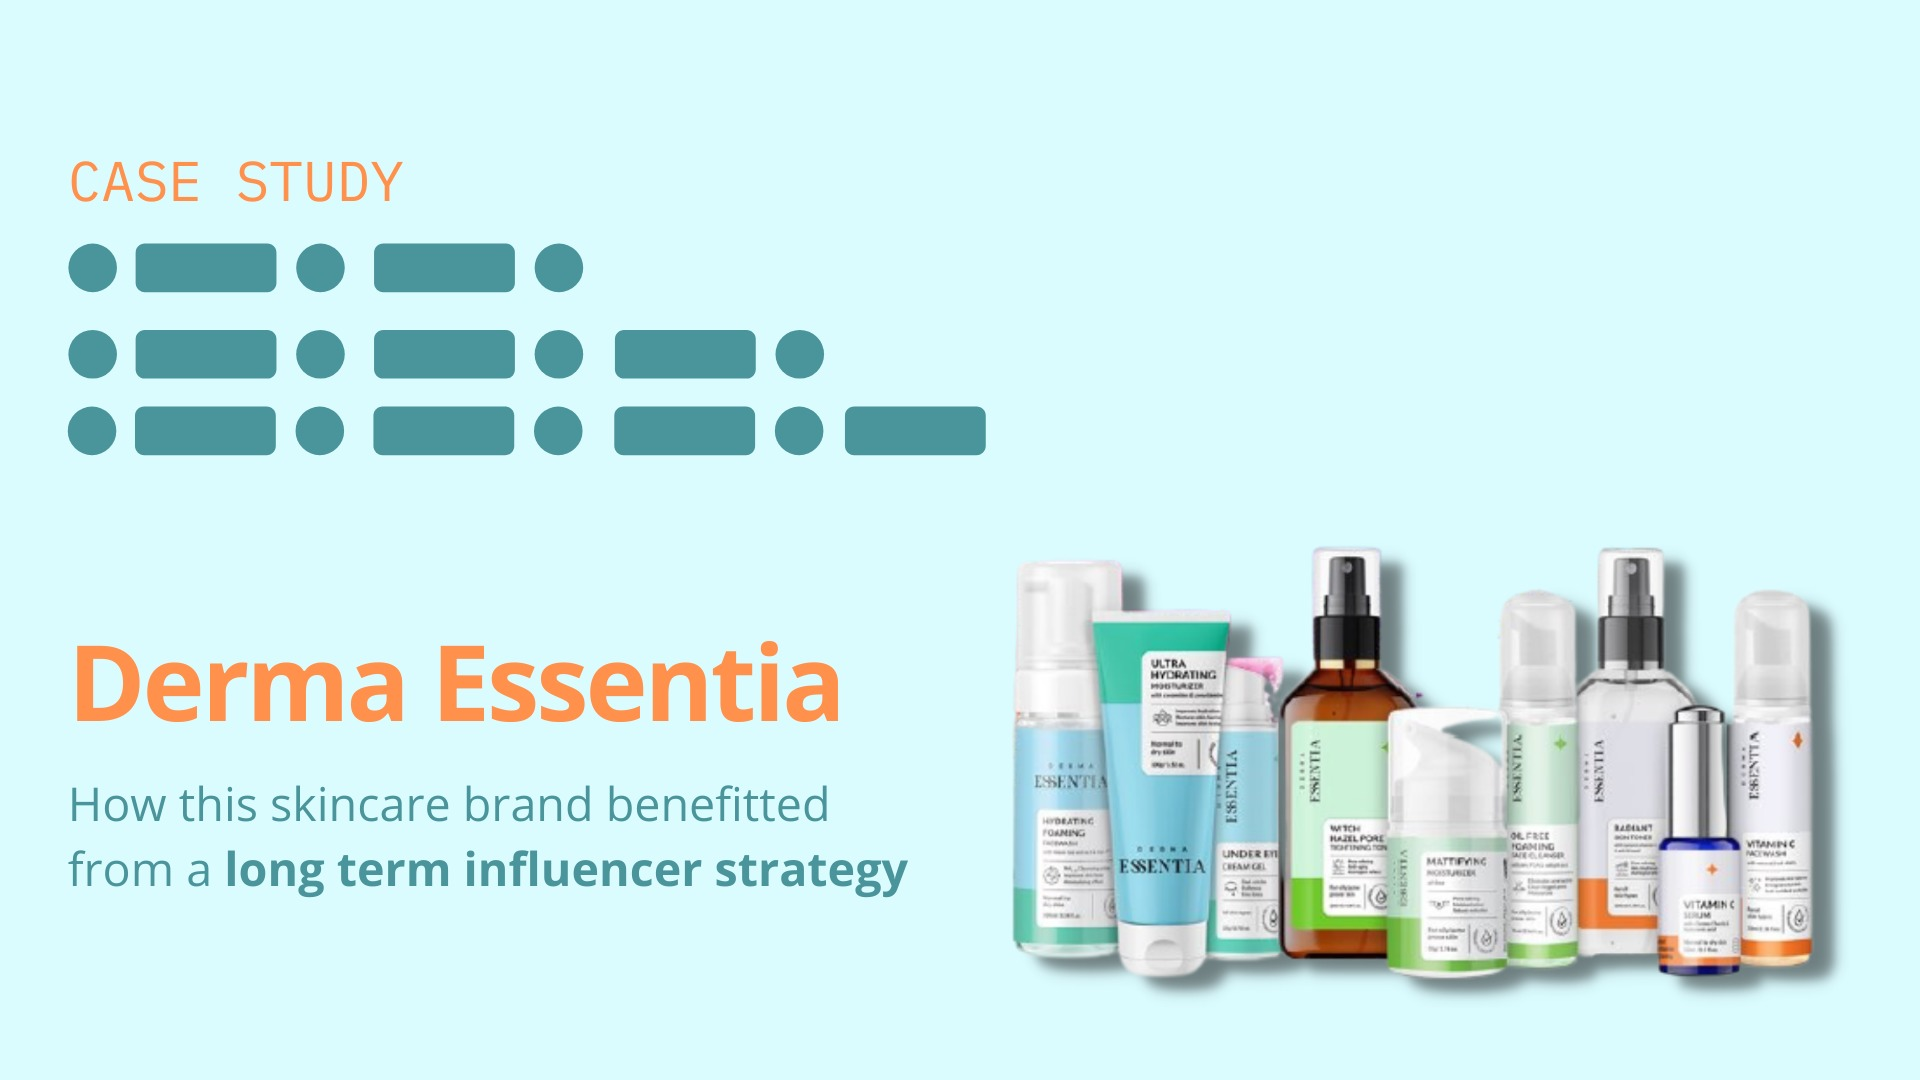 Derma Essentia: How this skincare brand benefitted from a long terms influencer strategy - blog by Winkl (An influencer marketing platform)